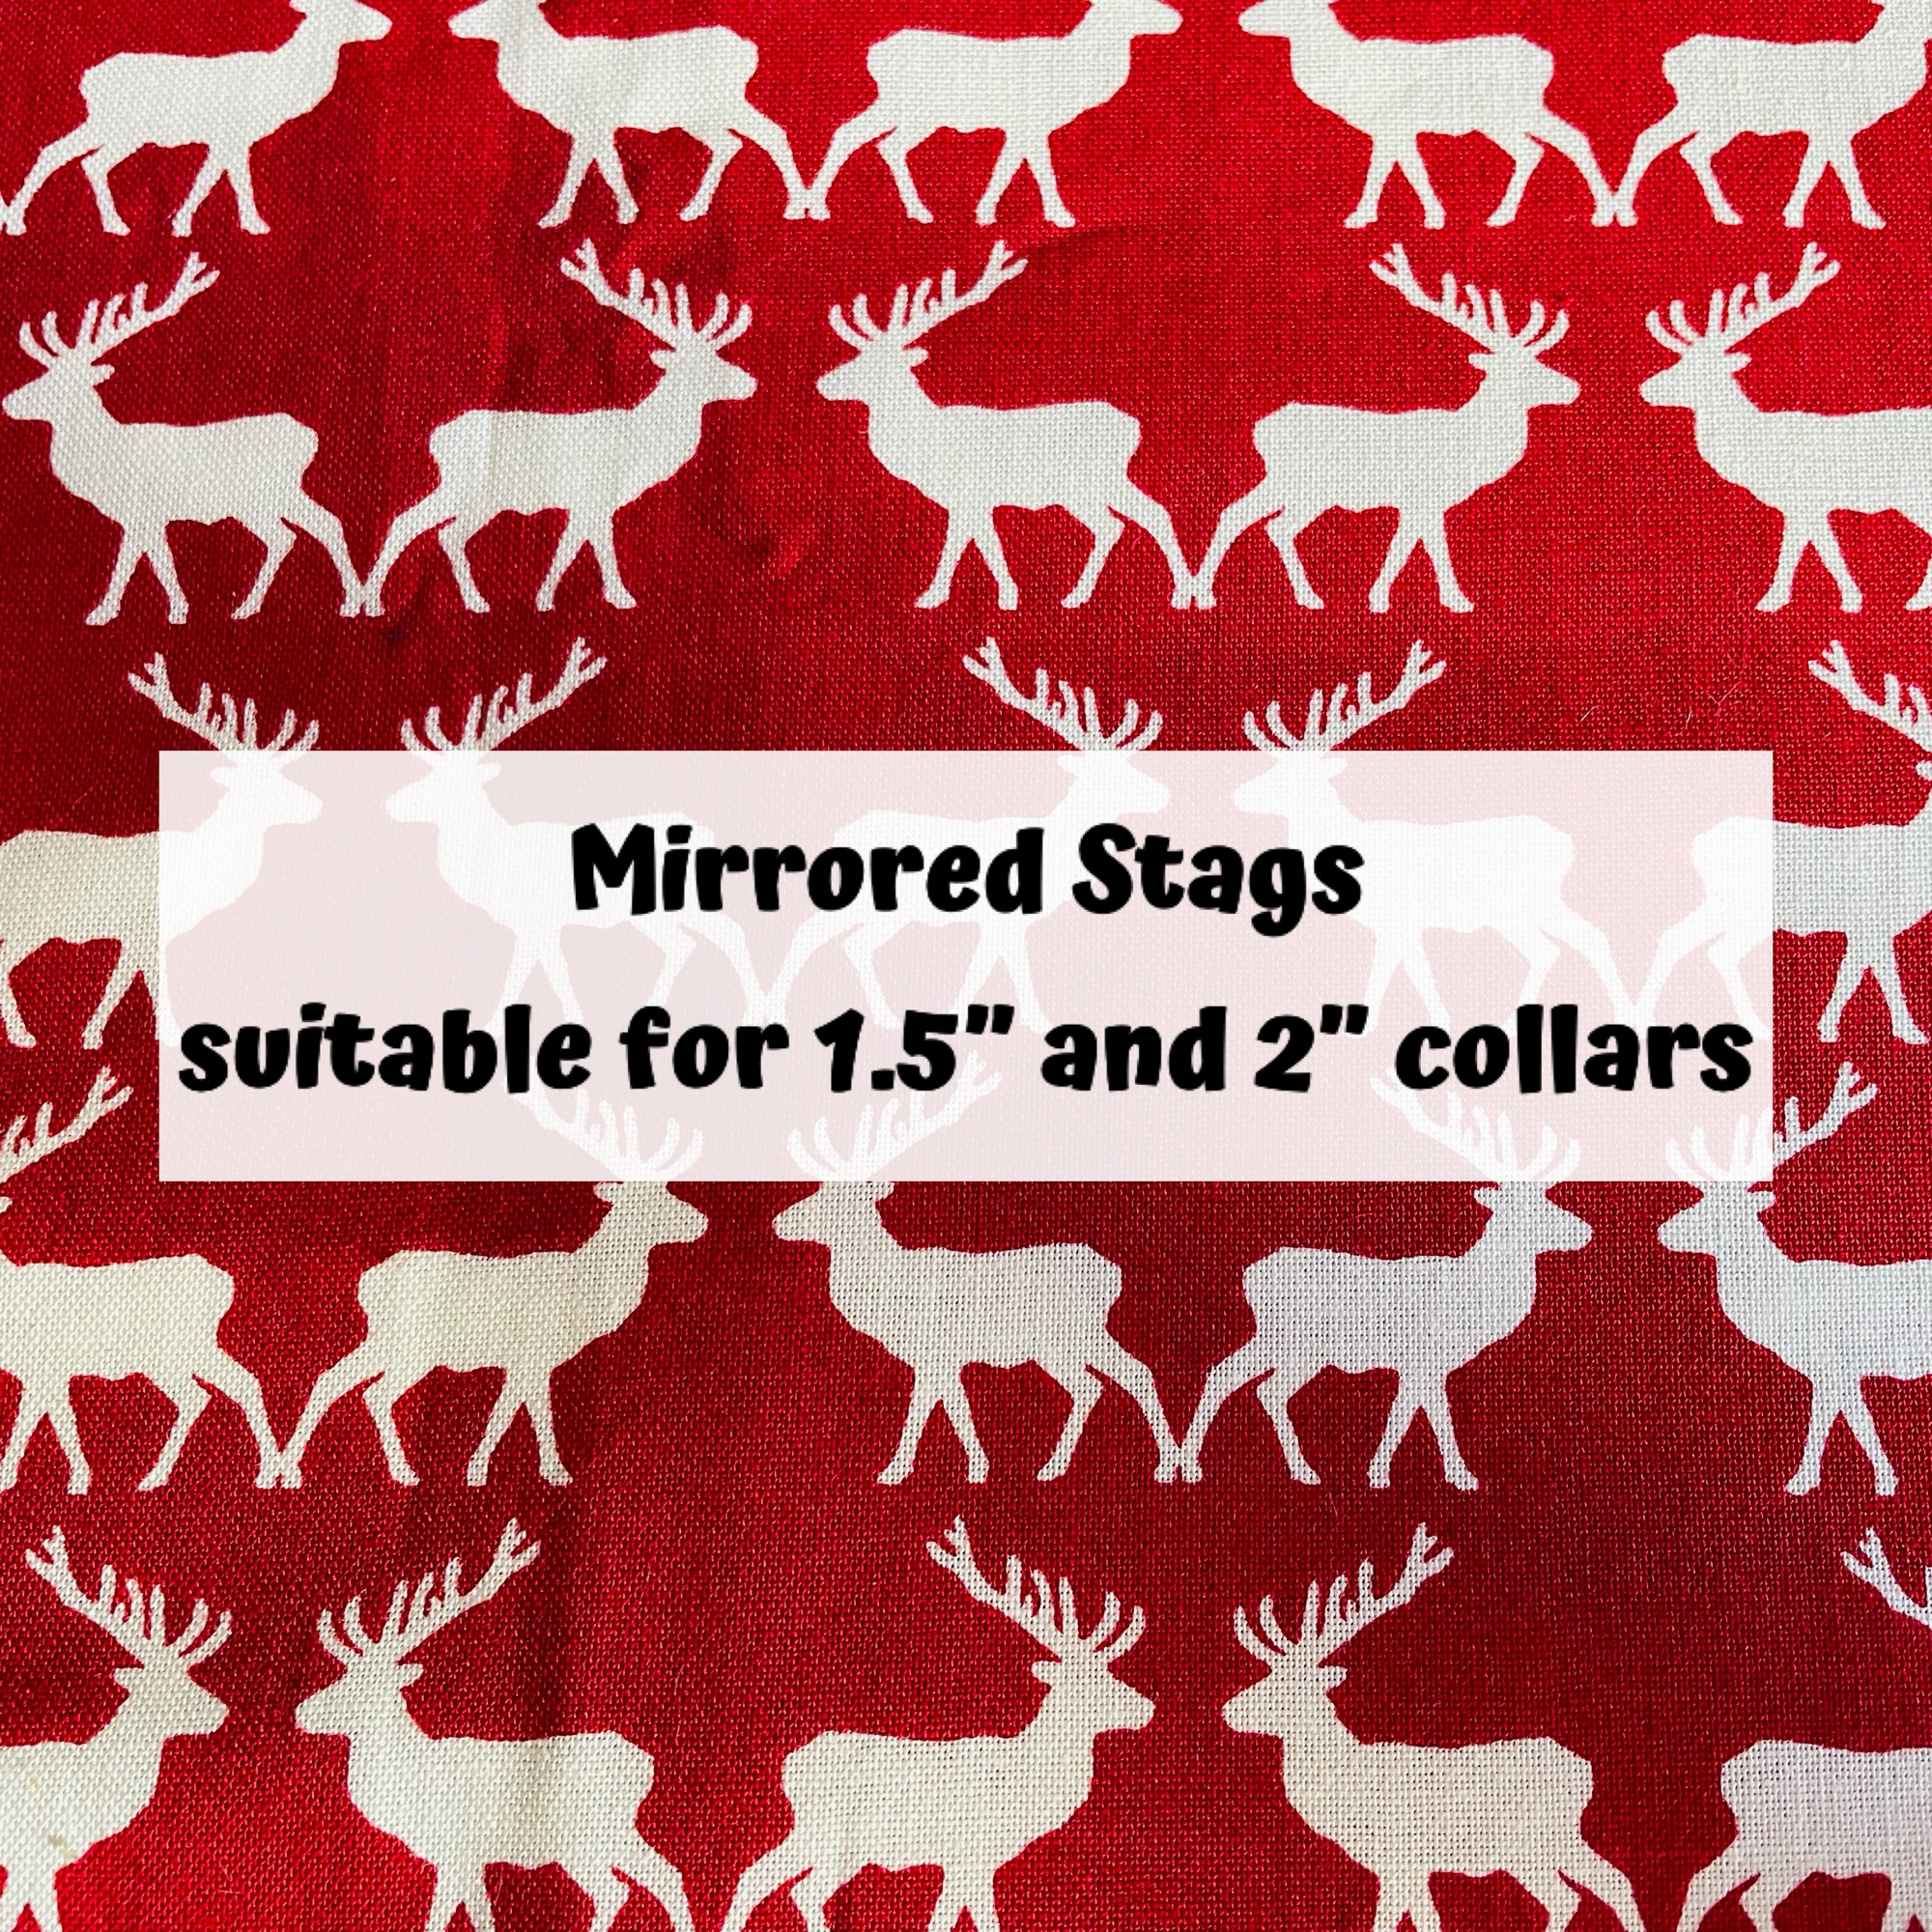 Mirrored Stags